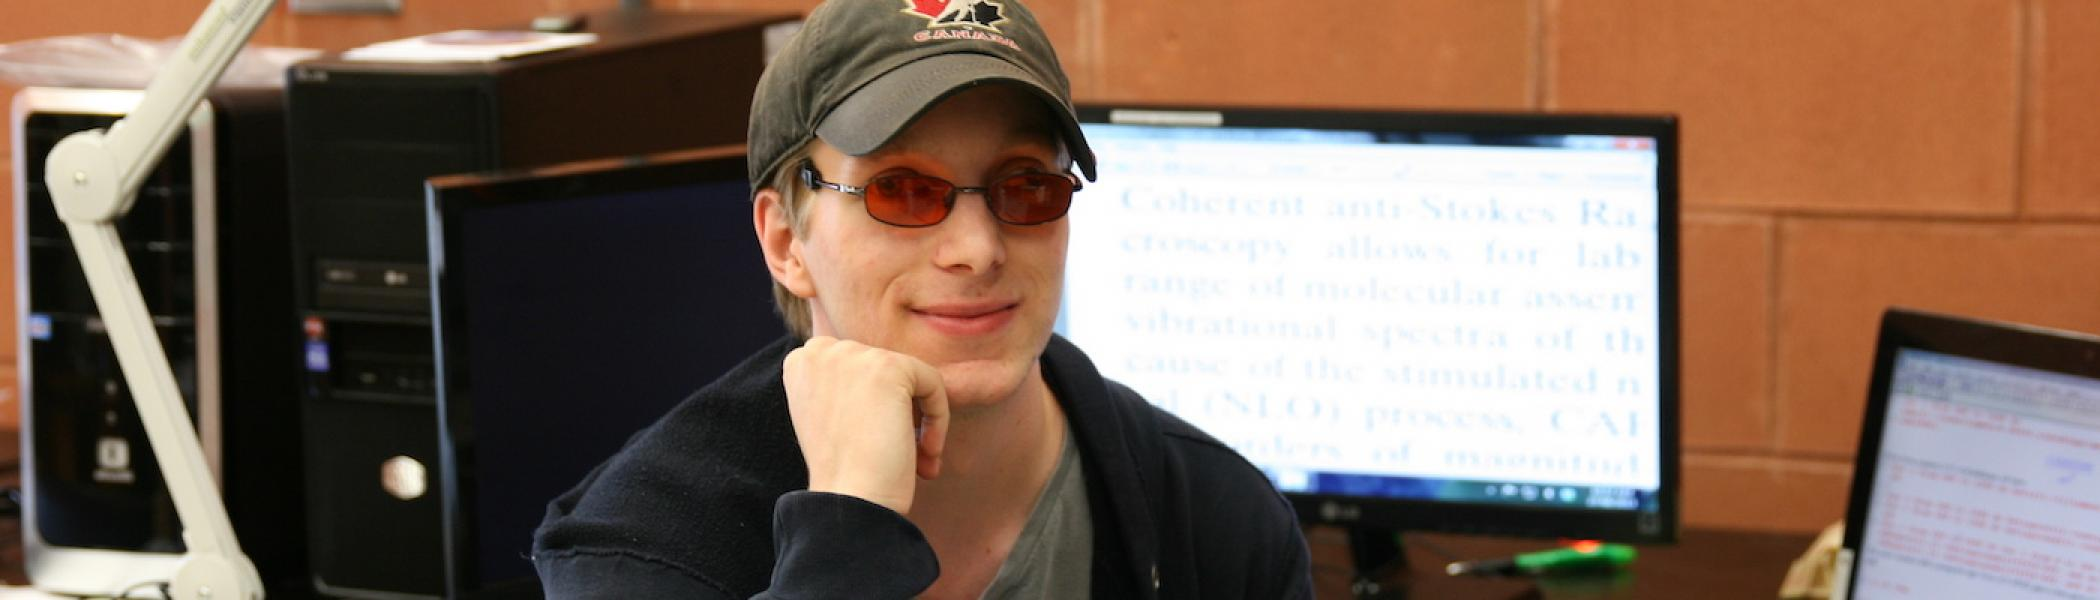 A student wearing sitting in front of a computer with his chin resting on his hand and smiling